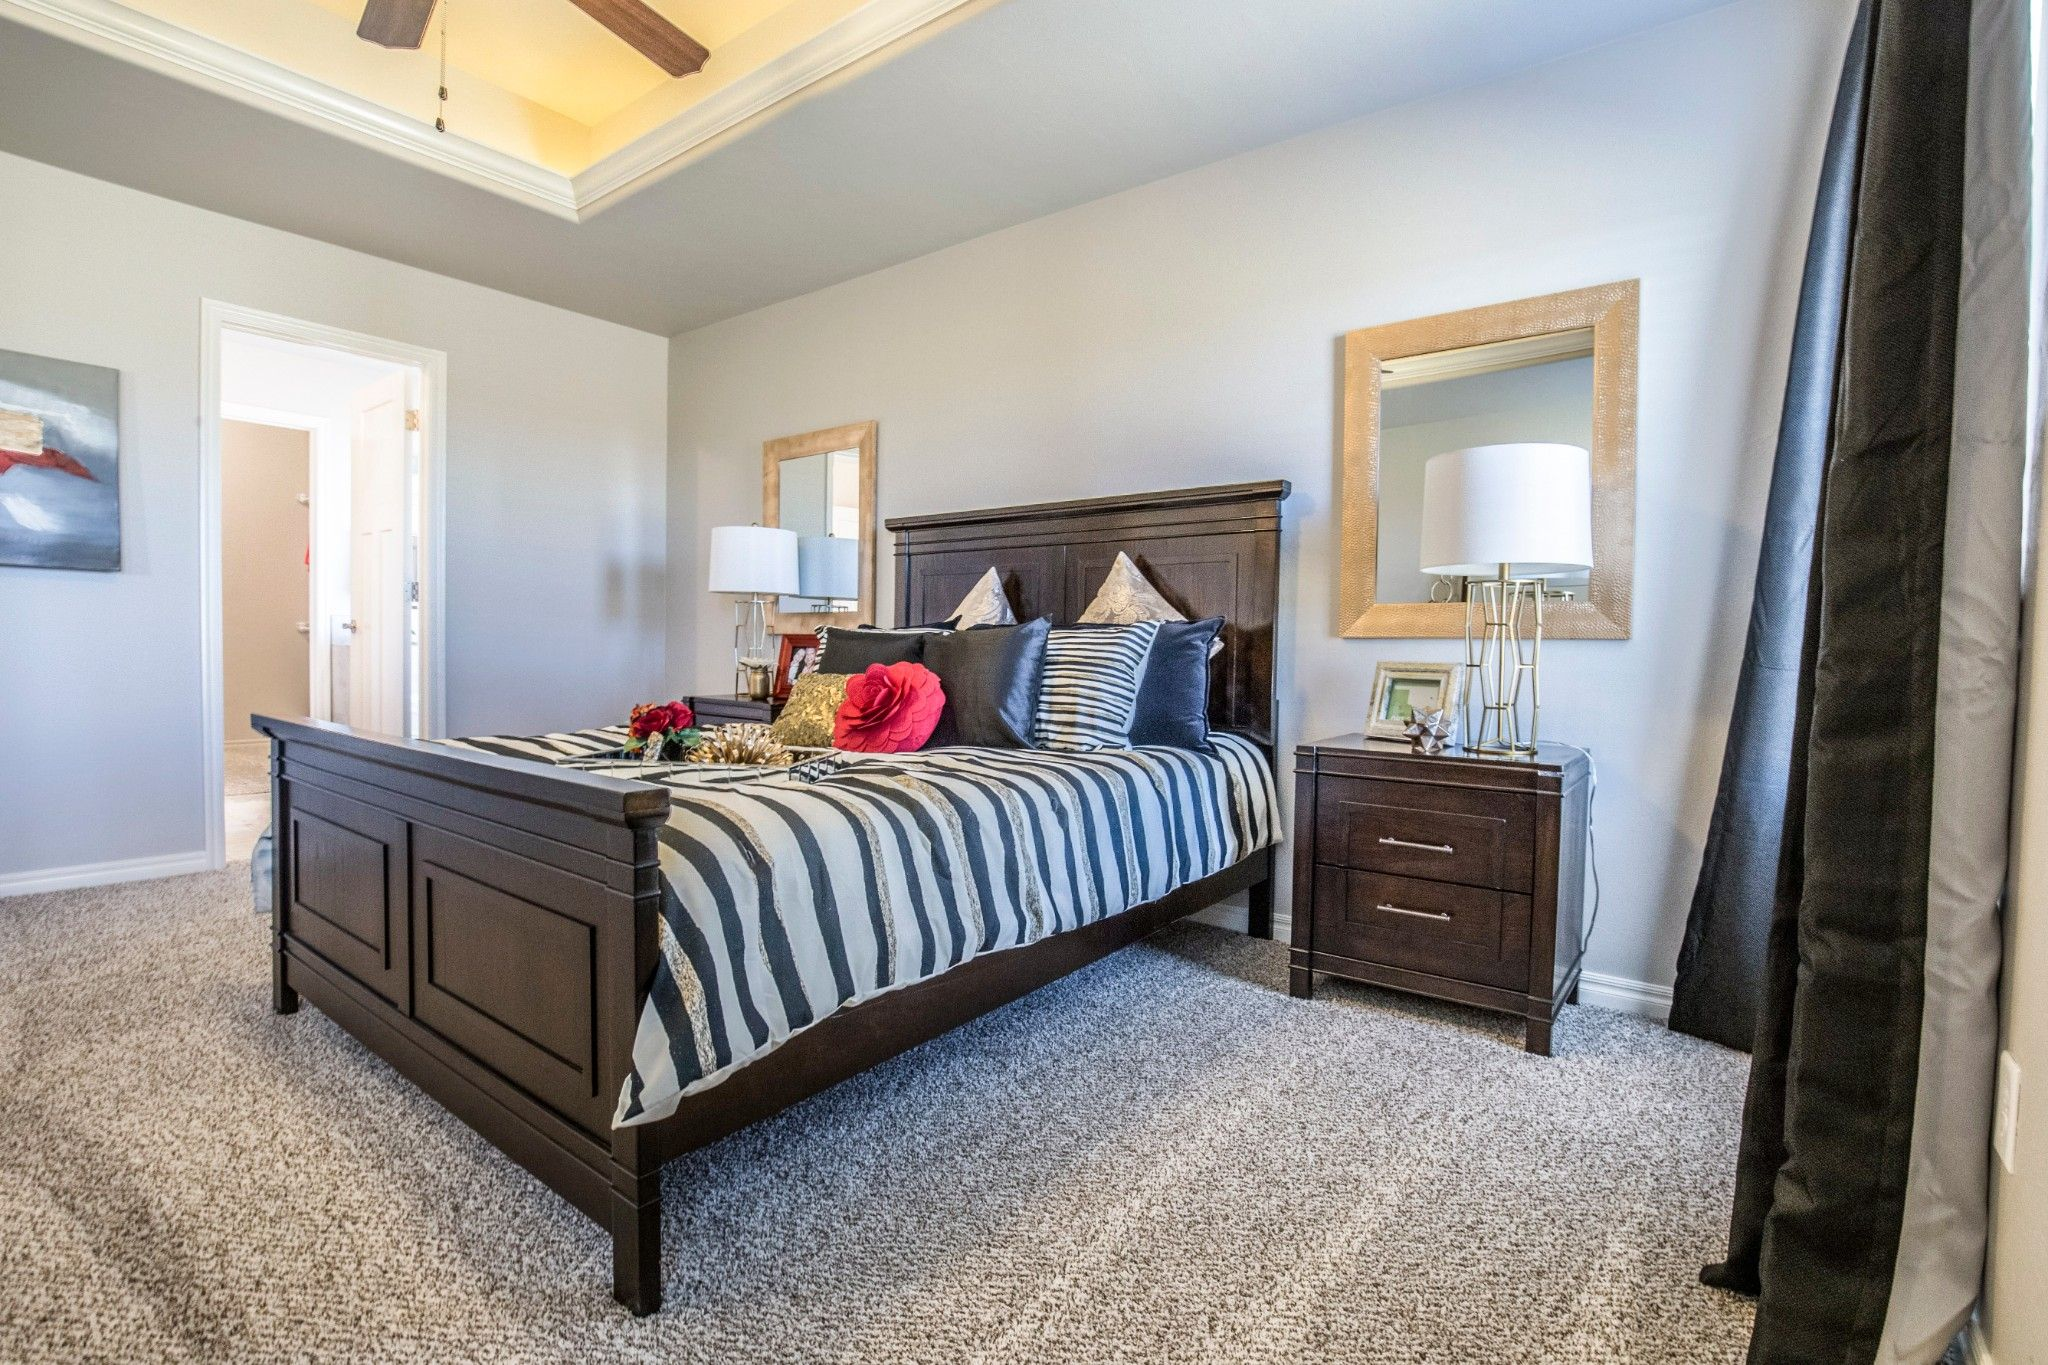 Bedroom featured in the Blue Spruce By Homes By Taber in Oklahoma City, OK